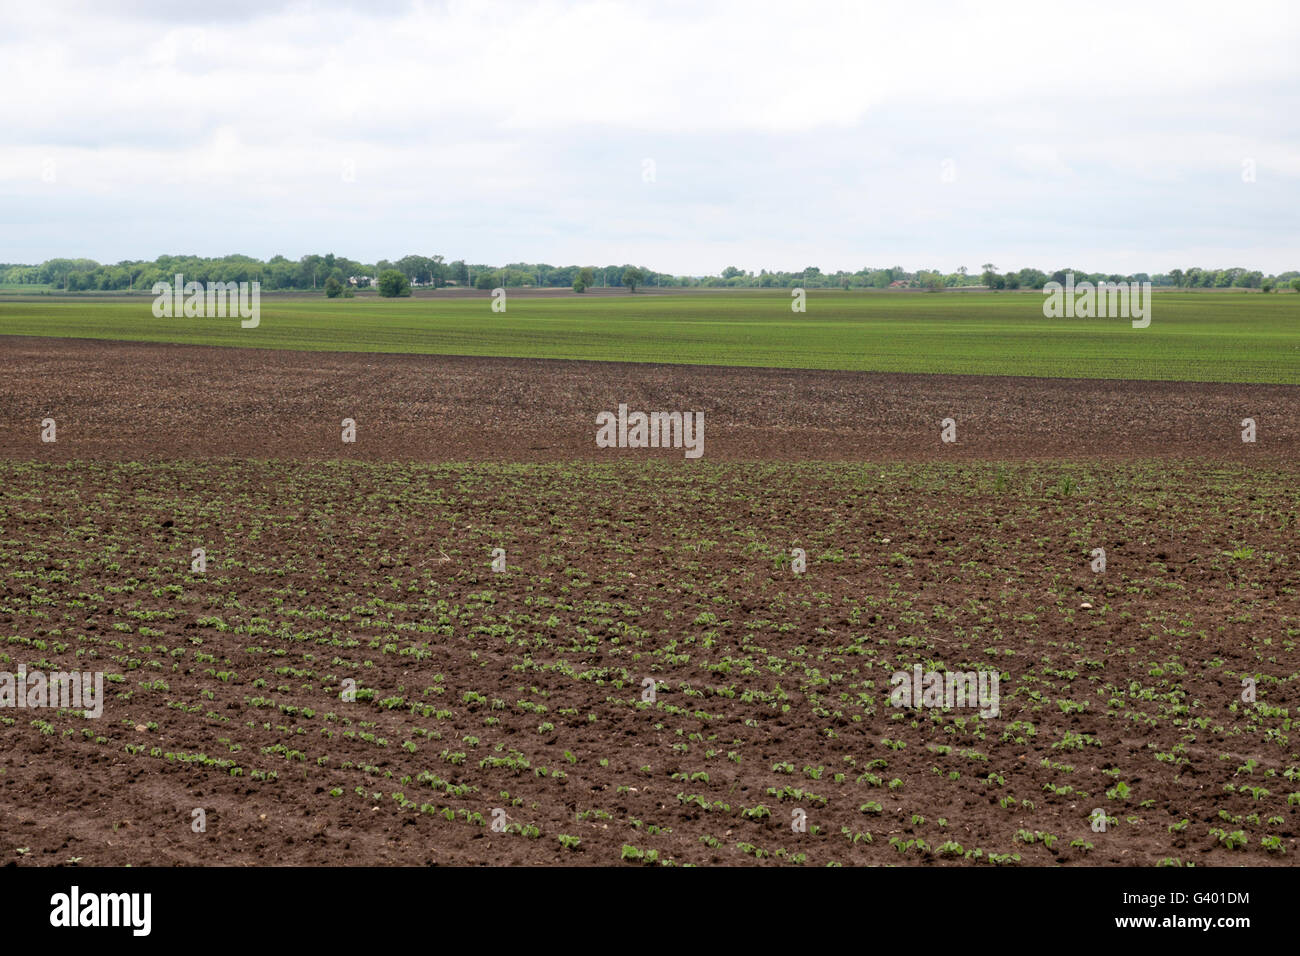 Cultivated and planted fields on a northern Illinois farm in early spring. - Stock Image